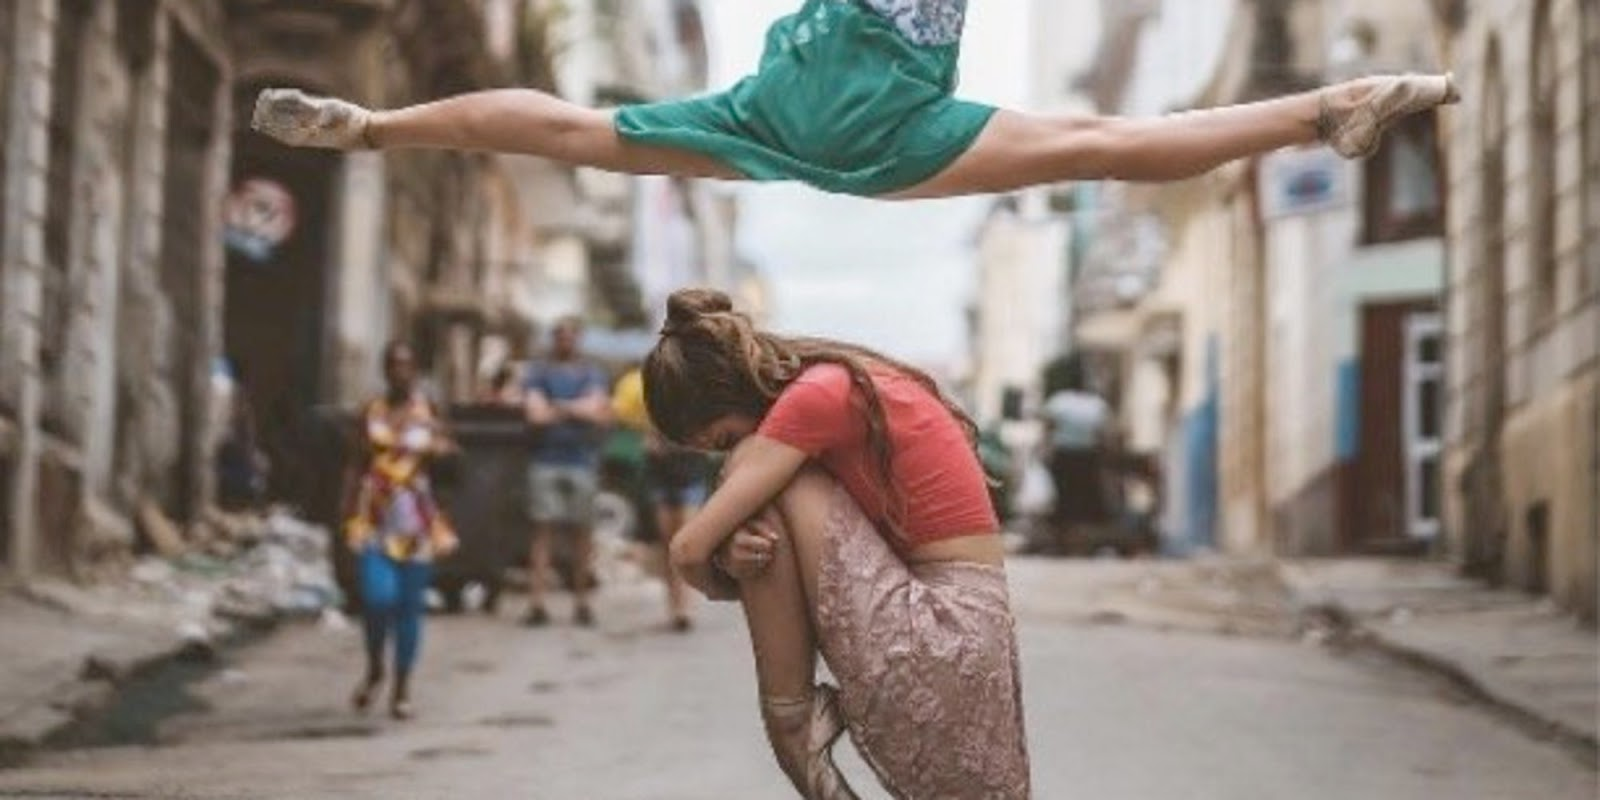 Breathtaking Photos Capture Cuba's Legendary Ballerinas Dancing In The Streets